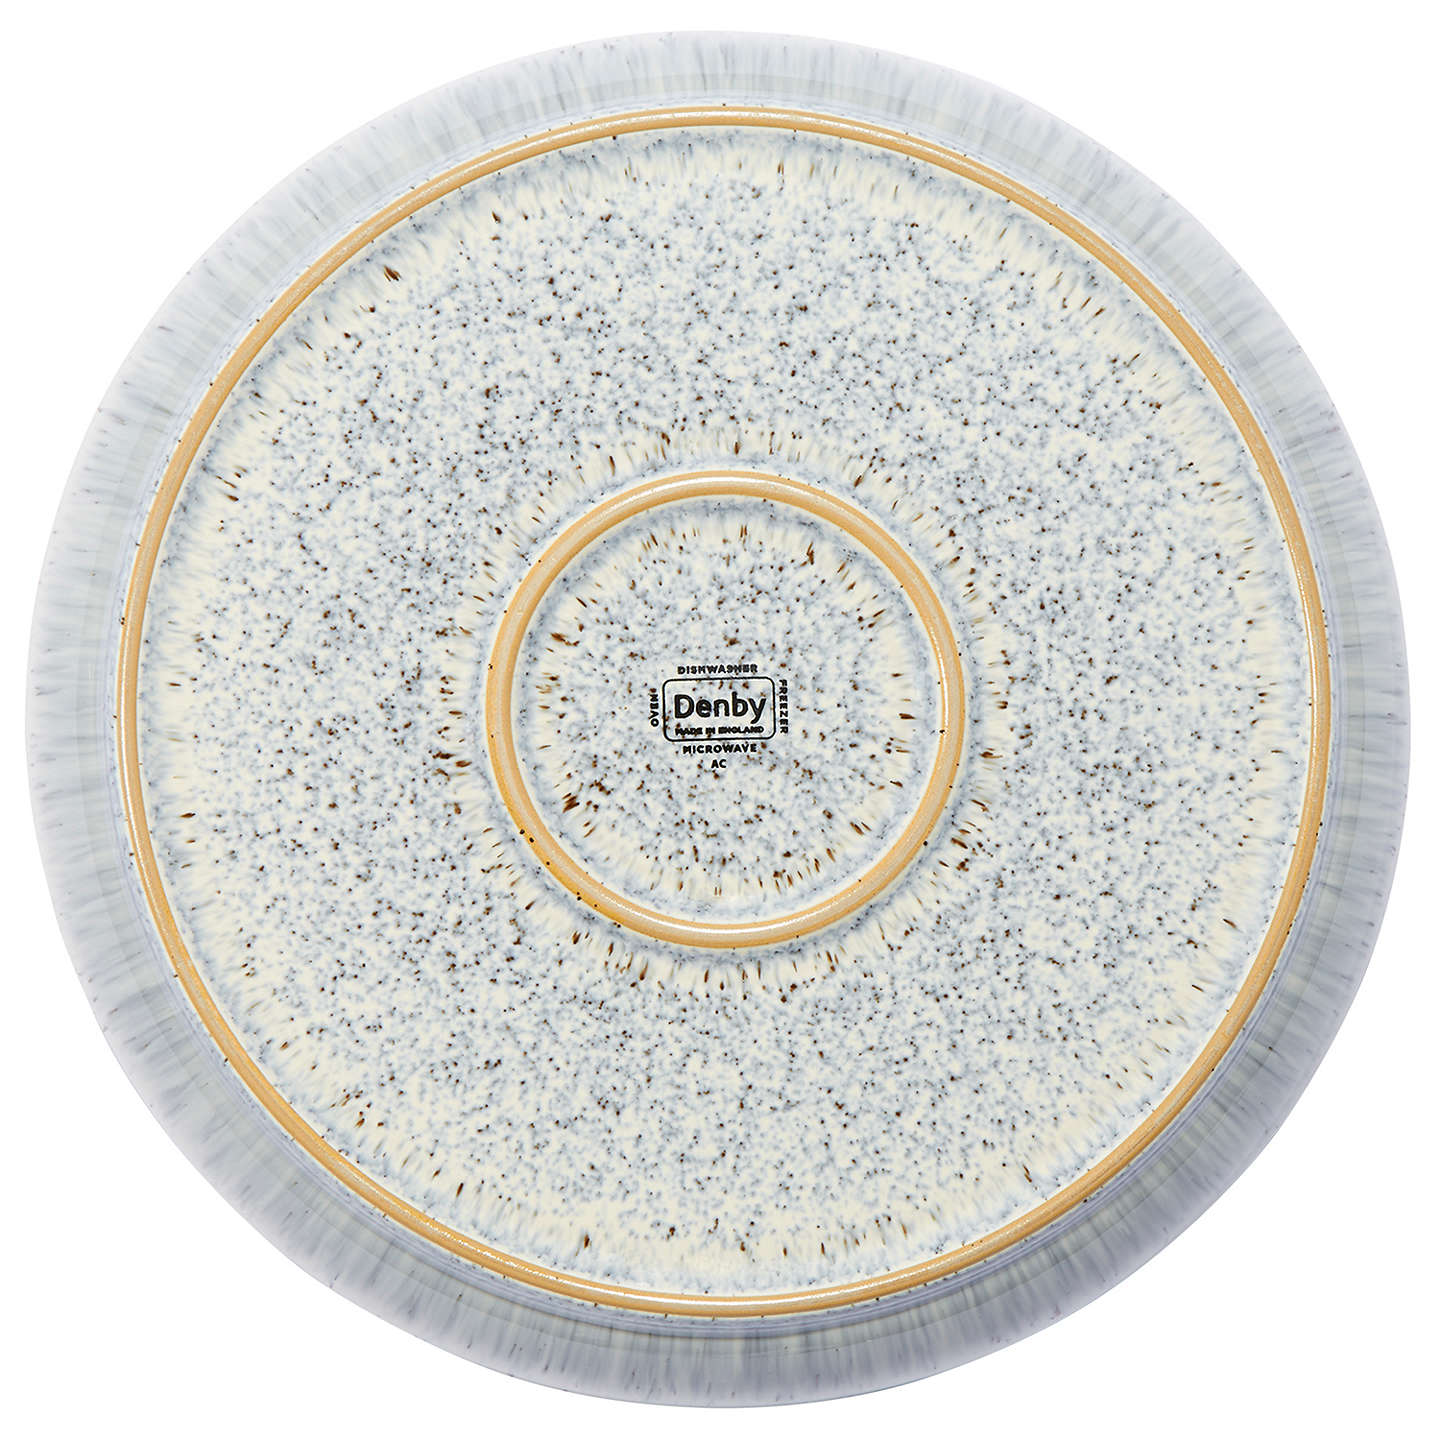 ... BuyDenby Halo Coupe Dinner Plate Multi Dia.26cm Online at johnlewis.com  sc 1 st  John Lewis & Denby Halo Coupe Dinner Plate Multi Dia.26cm at John Lewis